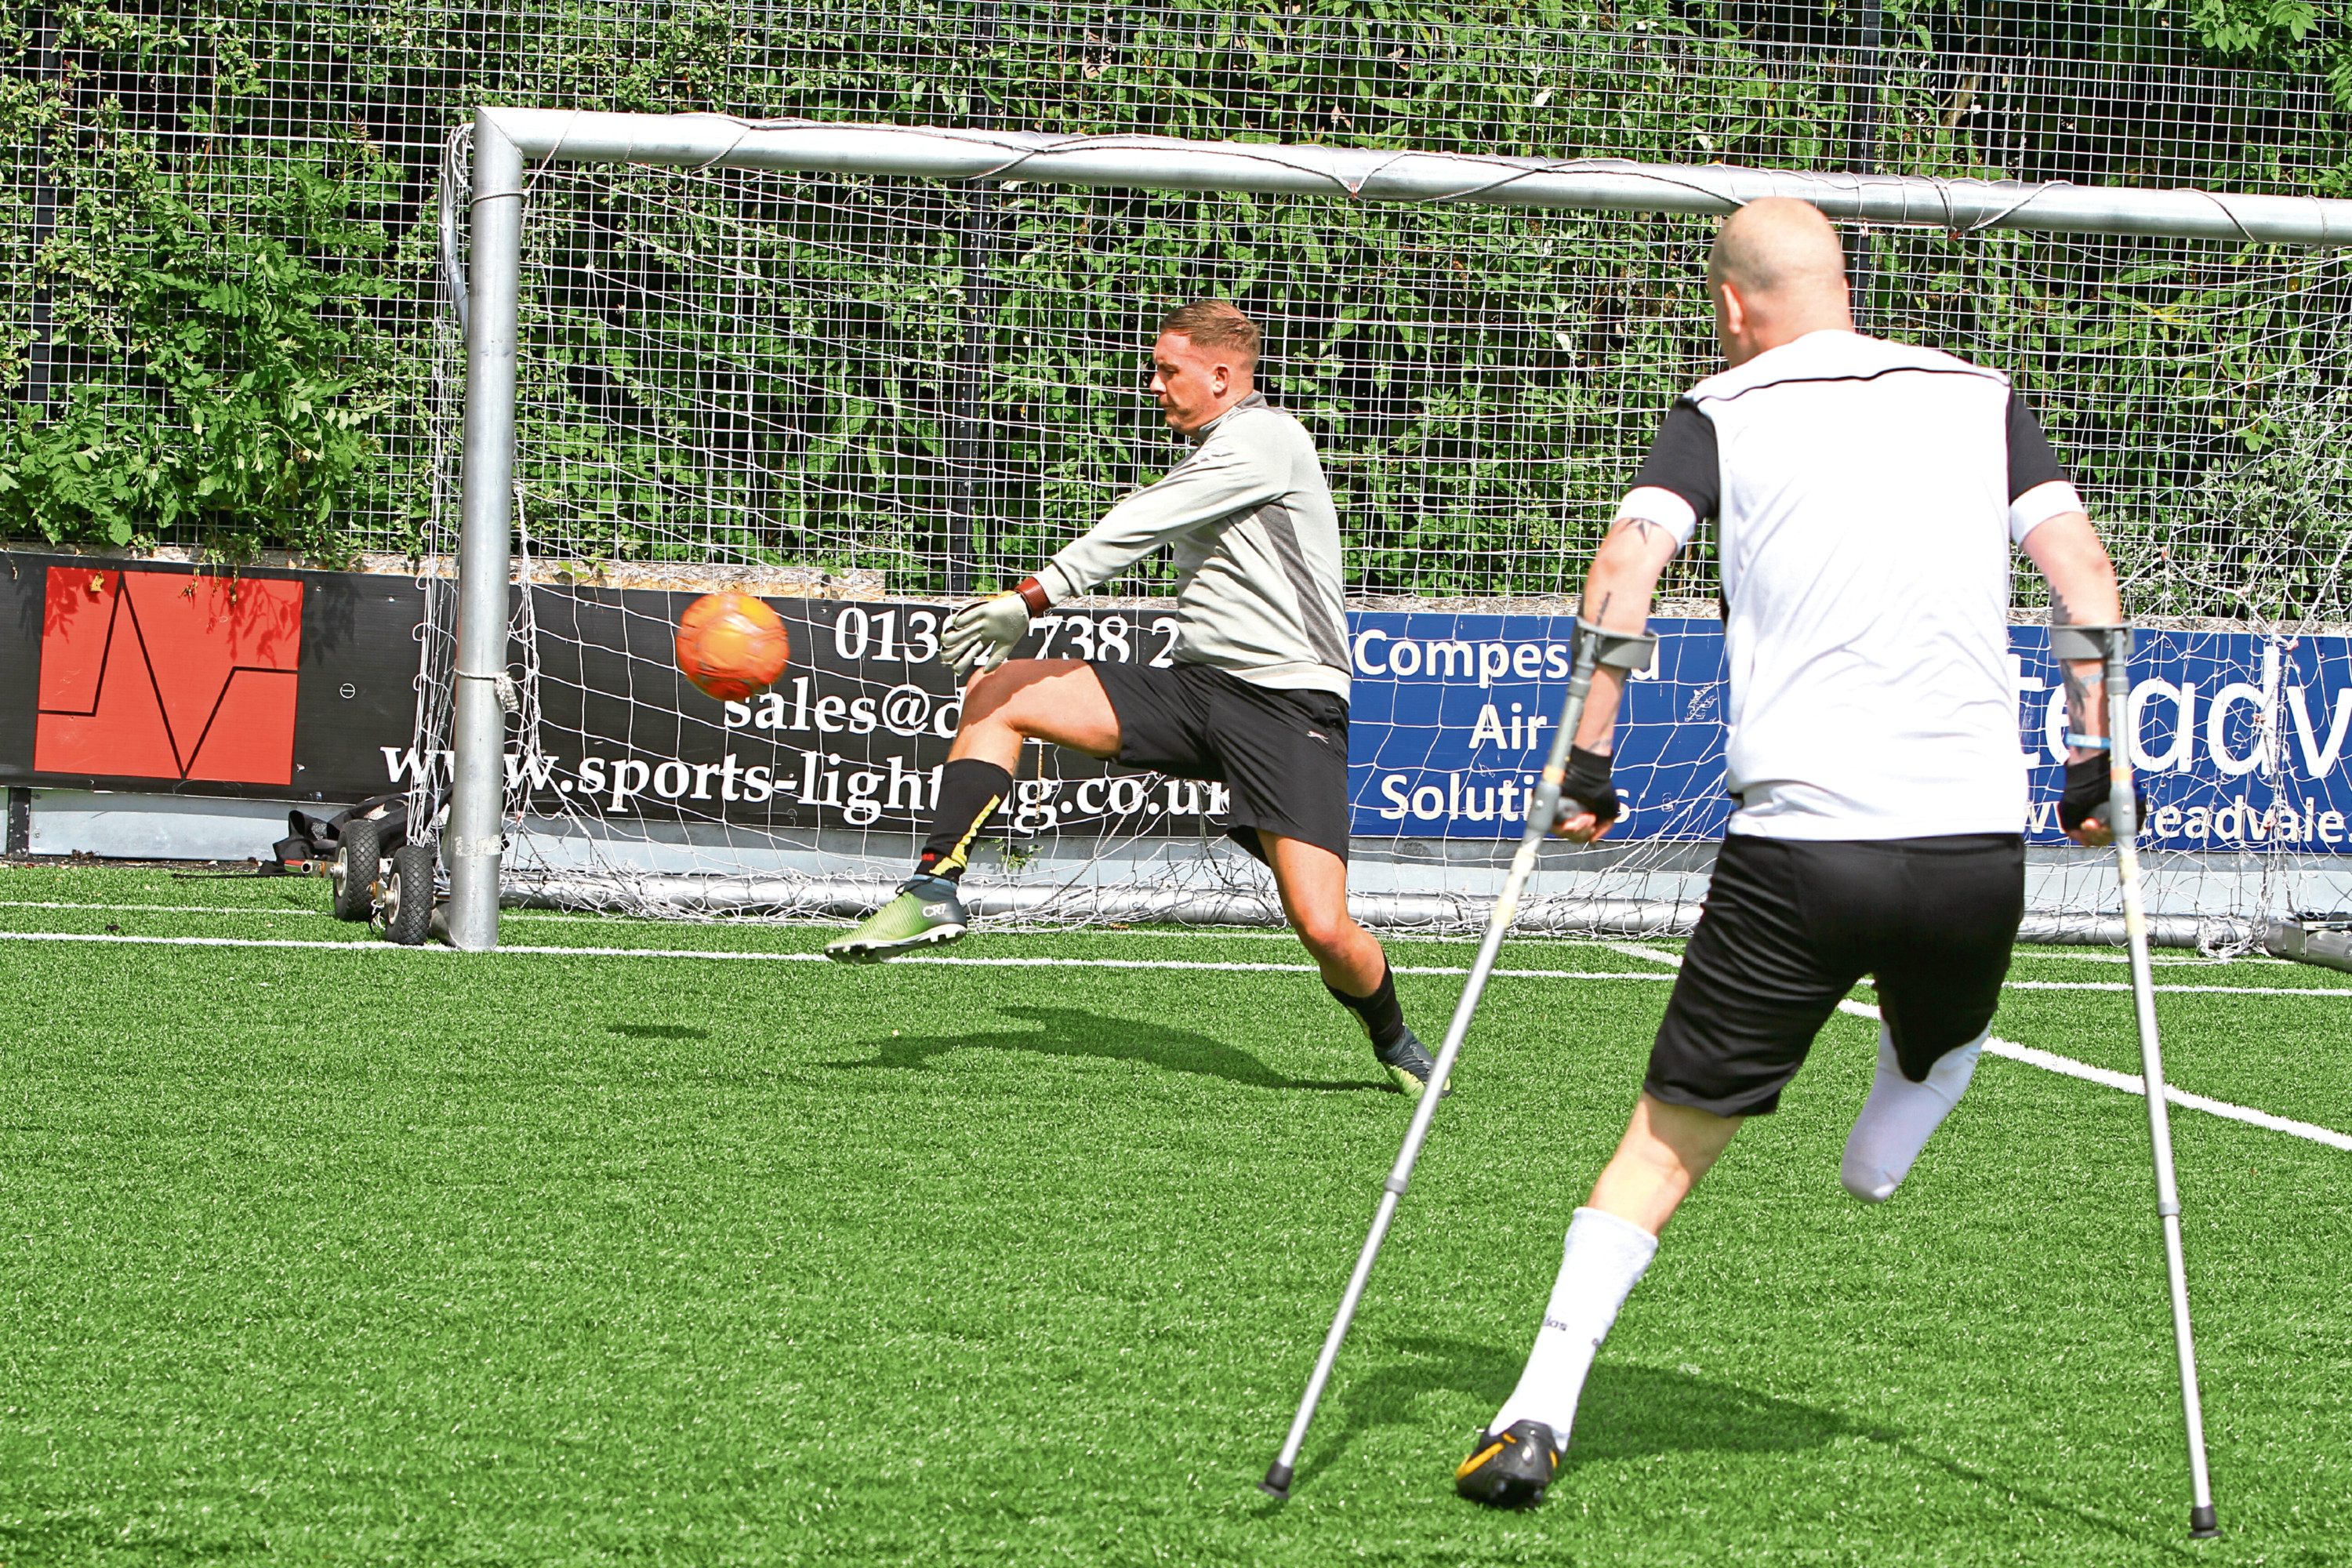 Rob Wilson firing in a shot with Steven Tully in goal, at the Amputee Football Programme training session at the GA Arena in Dundee.